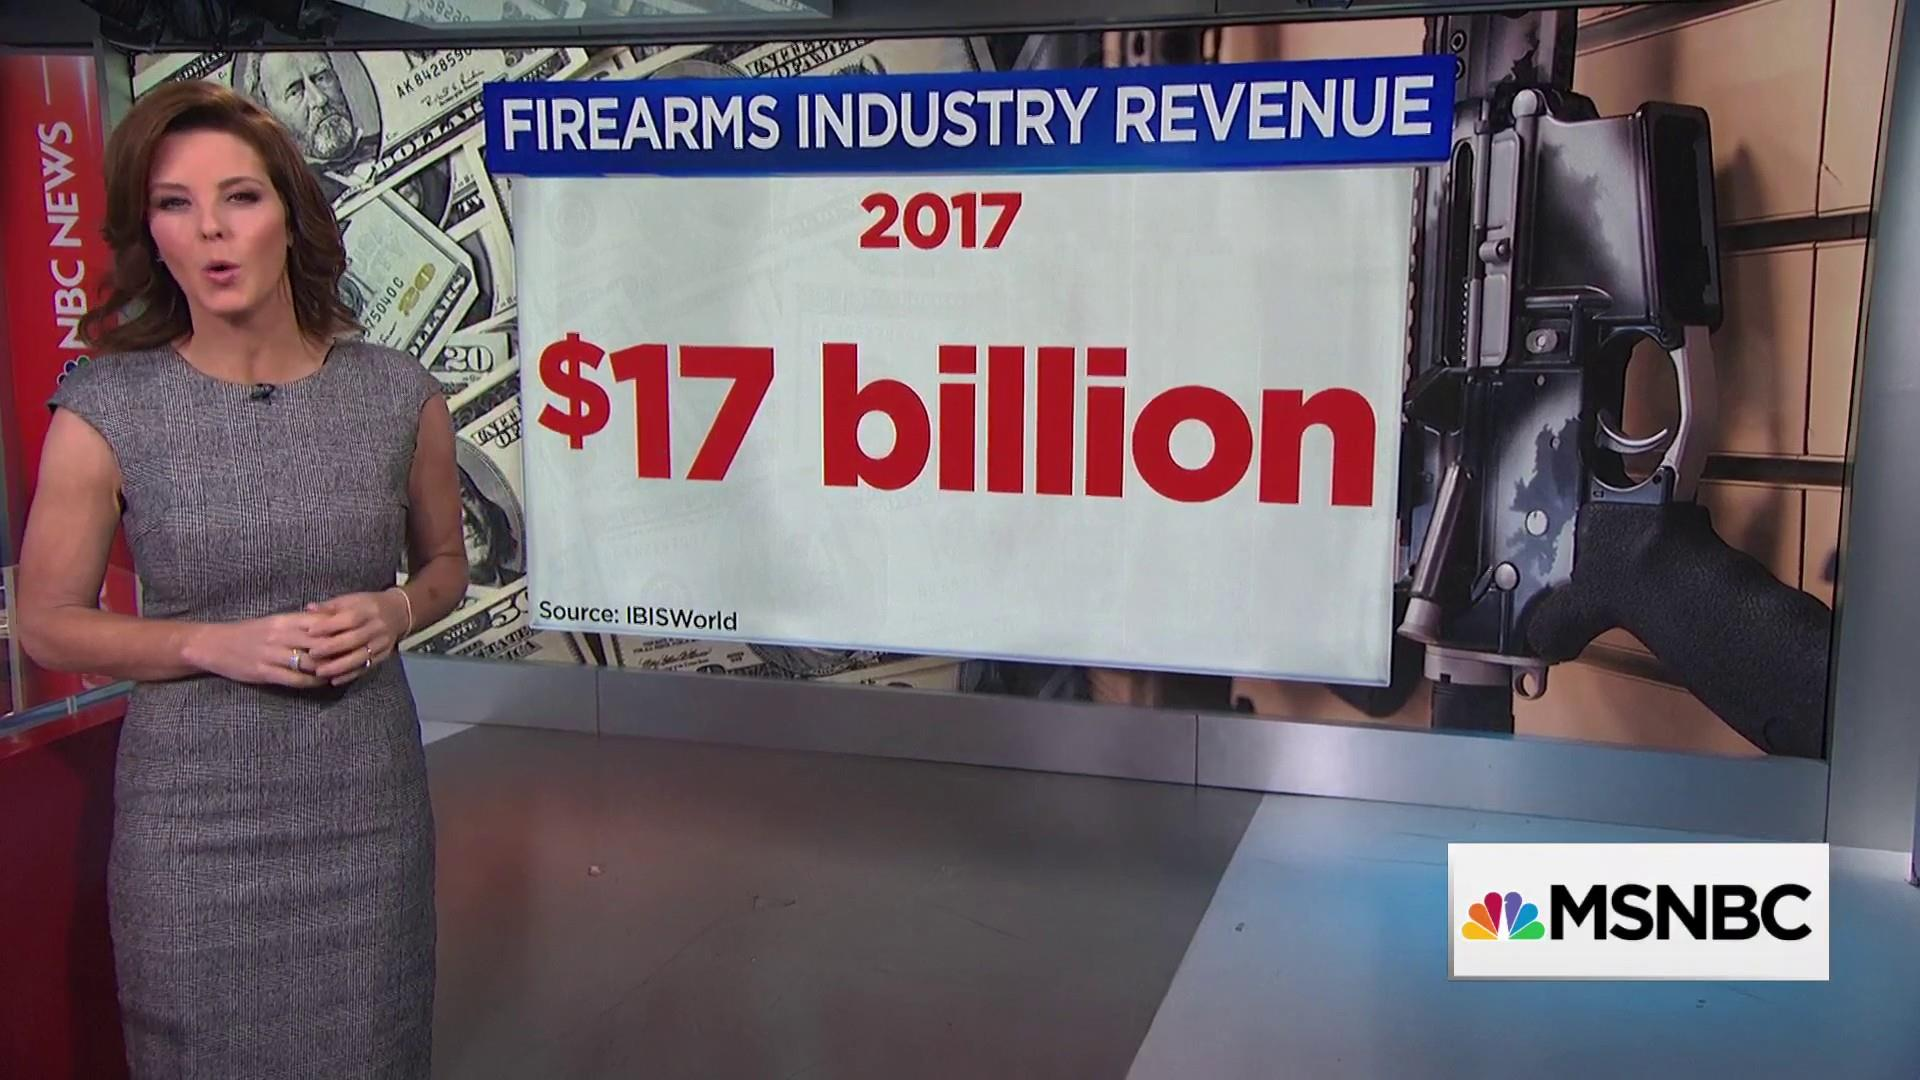 Here's who manufactures AR-15s and how much money they bring in